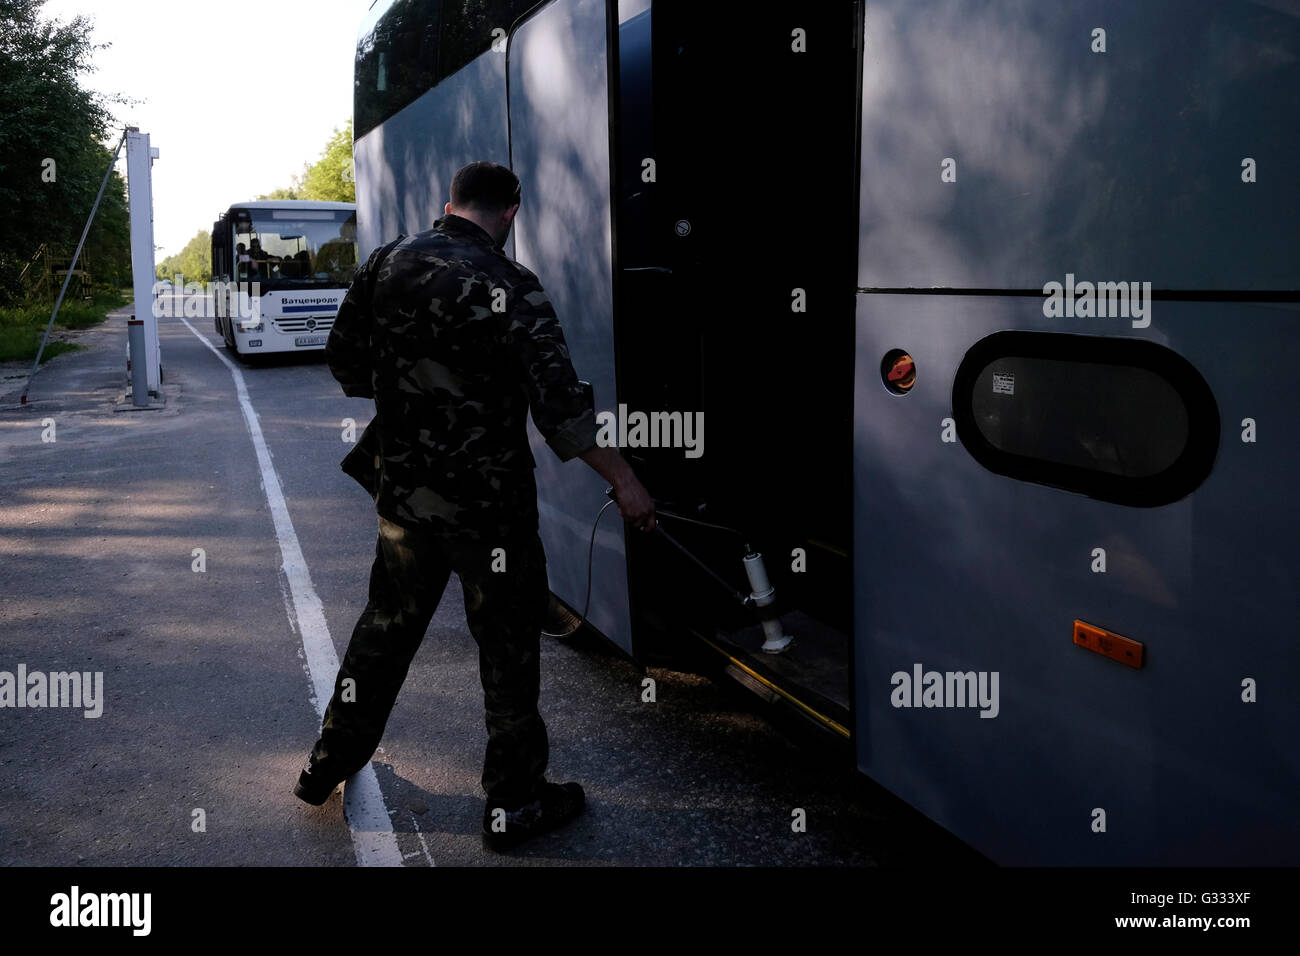 A bus is checked for radiation by a security guard in Leliv checkpoint after leaving the contaminated area of the - Stock Image